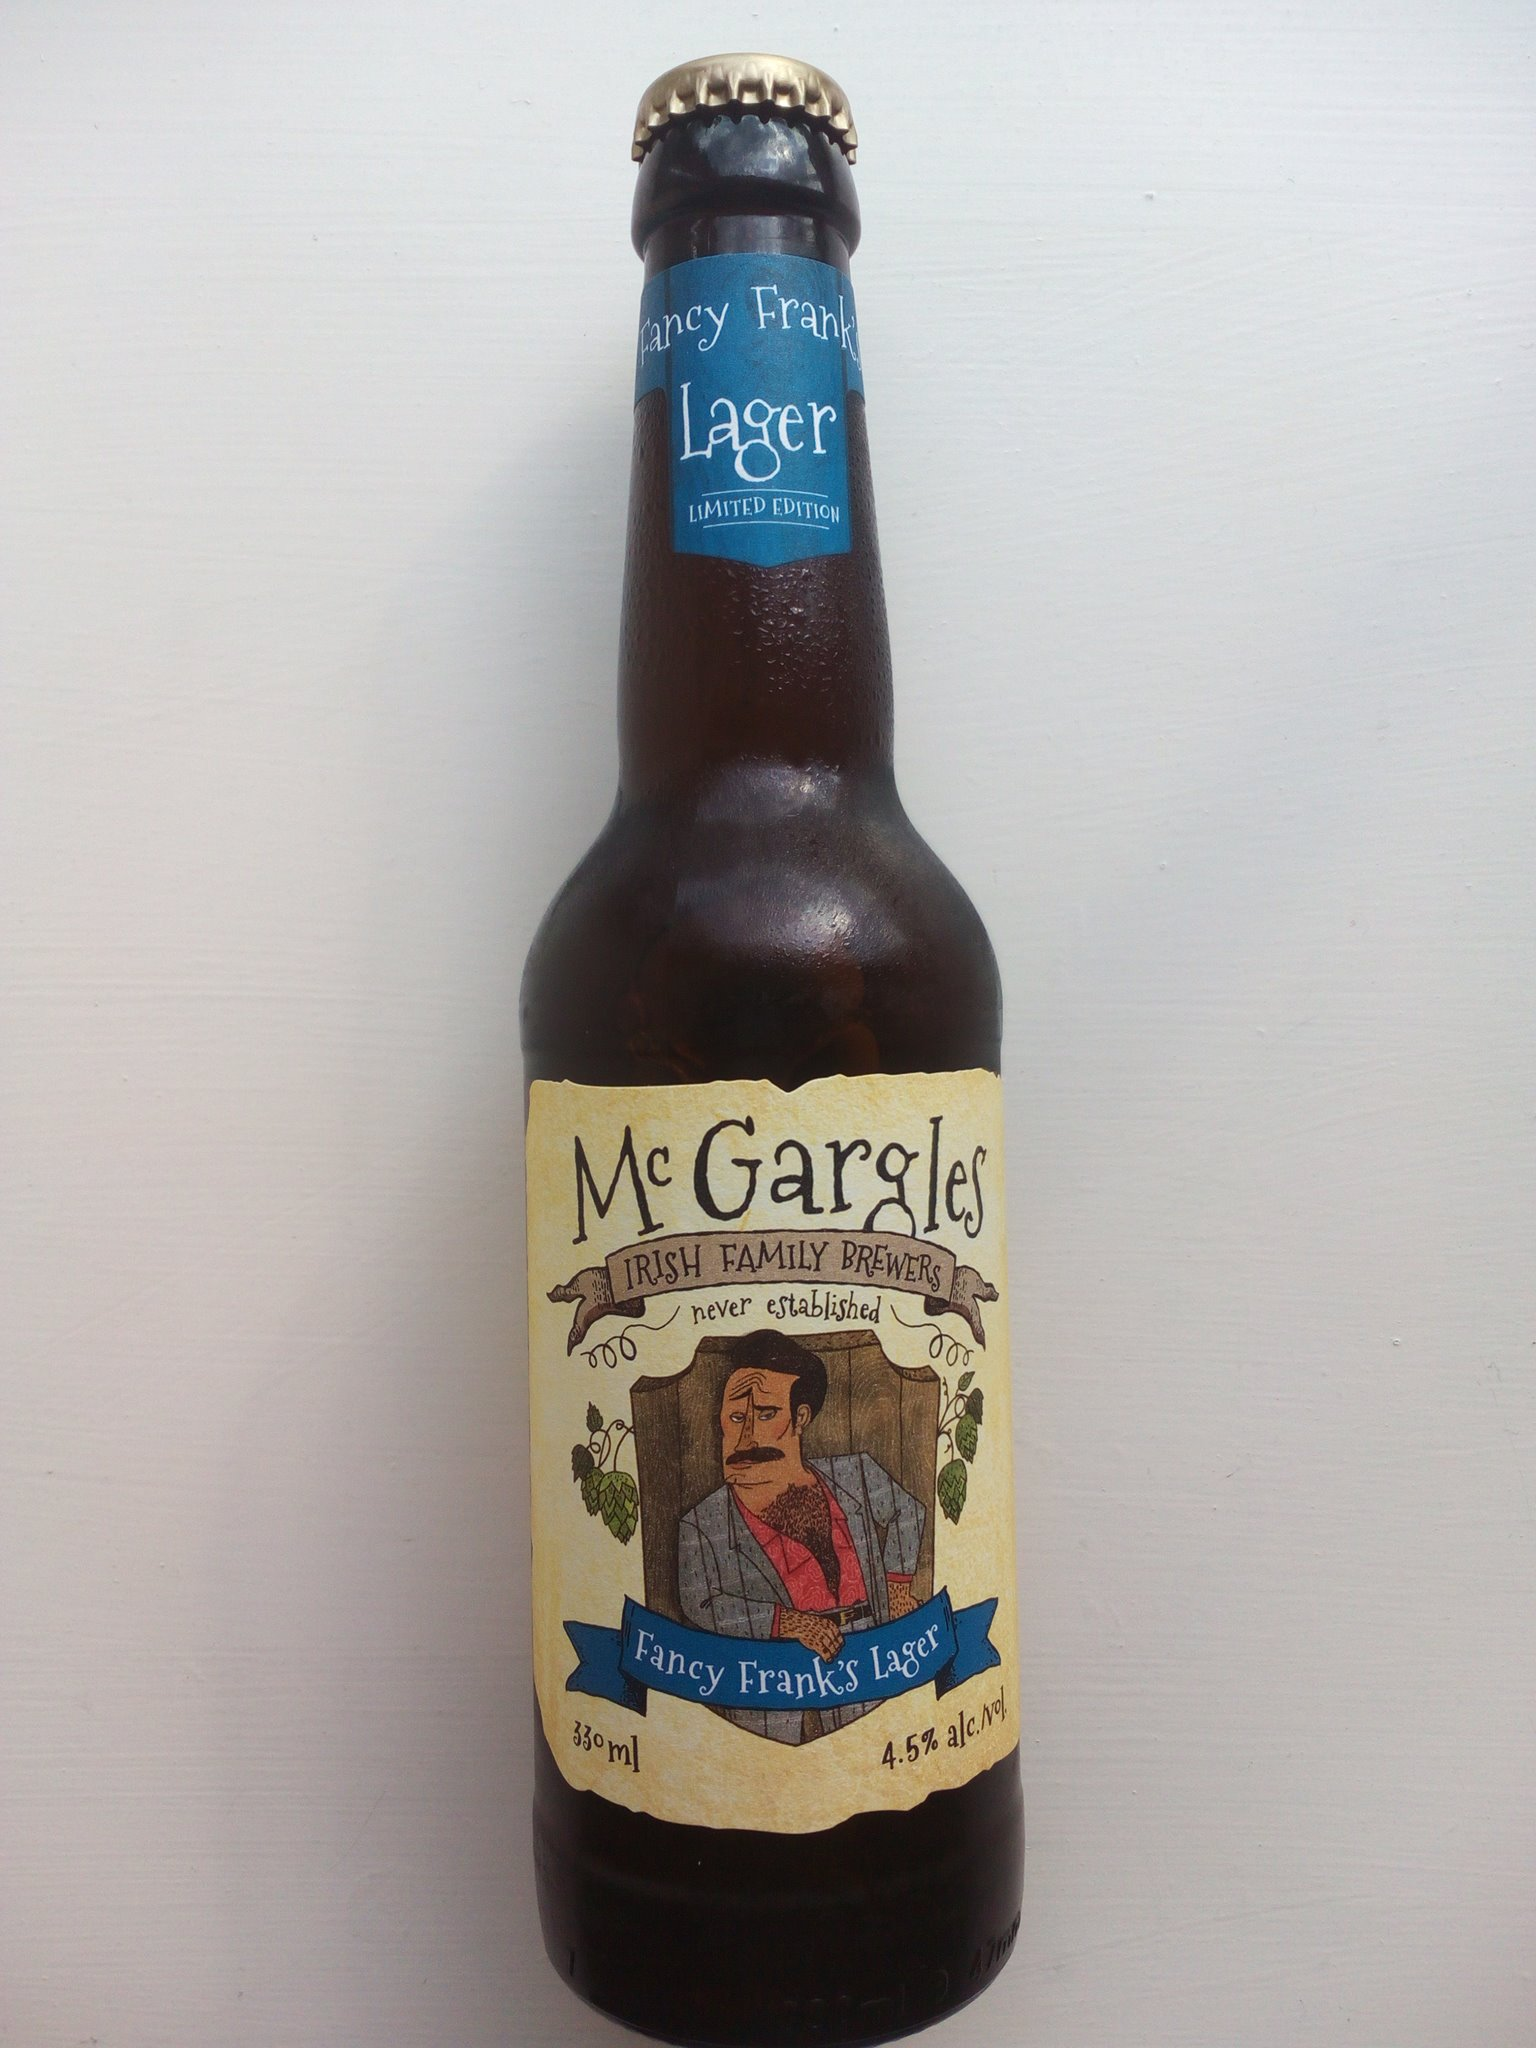 McGargles Fancy Franks Lager